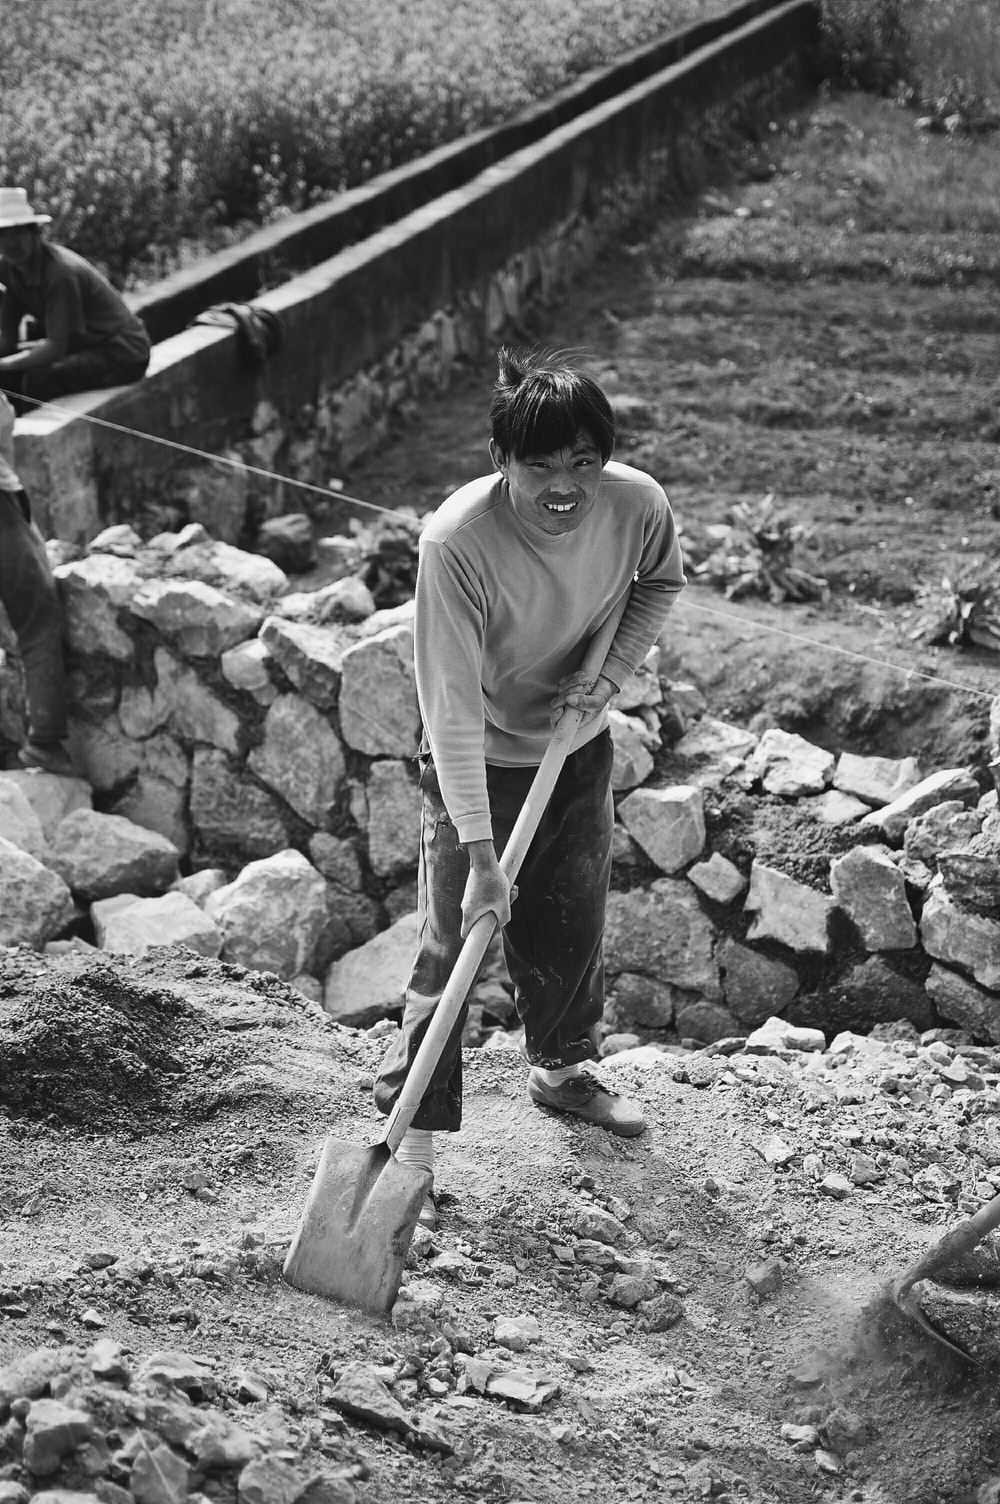 grayscale photo of man holding shovel